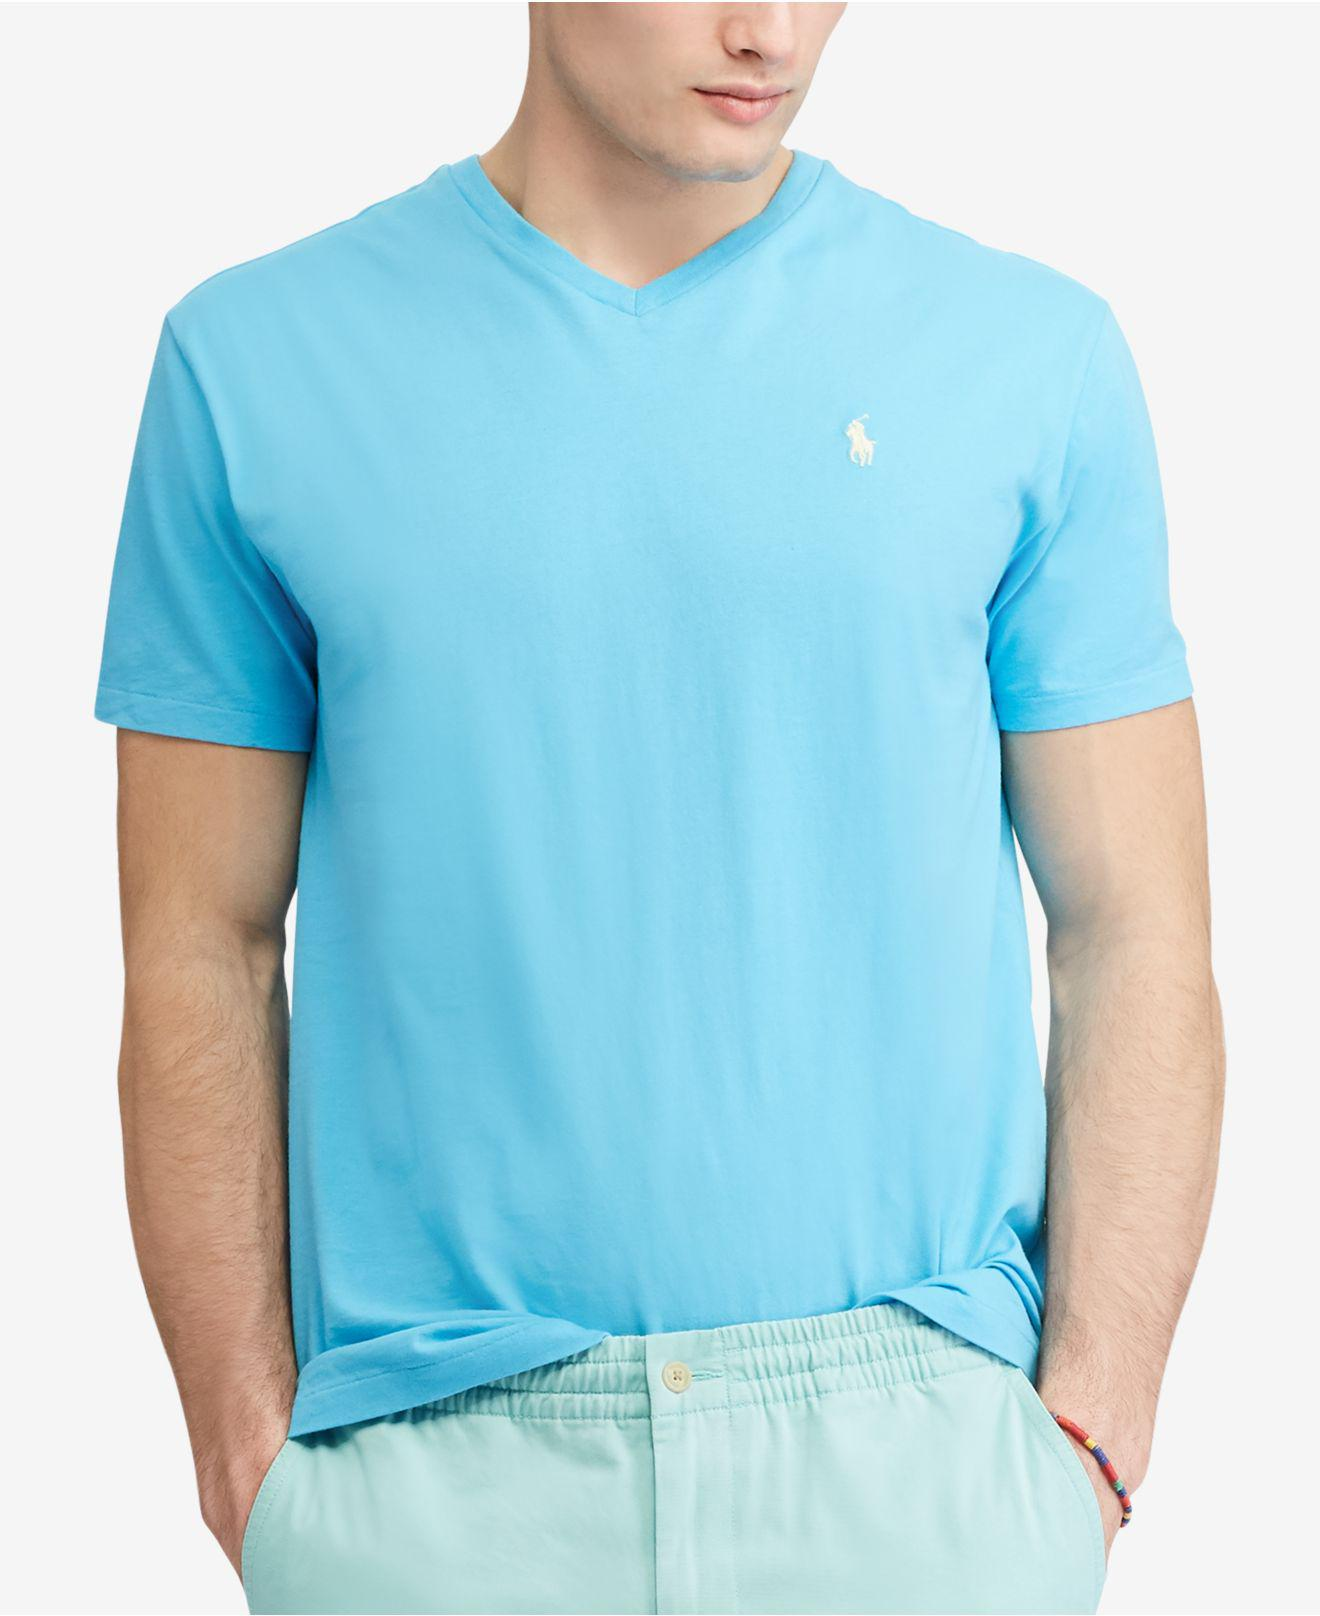 7ef6fbffb Polo Ralph Lauren Classic Fit V-neck T-shirt in Blue for Men - Lyst